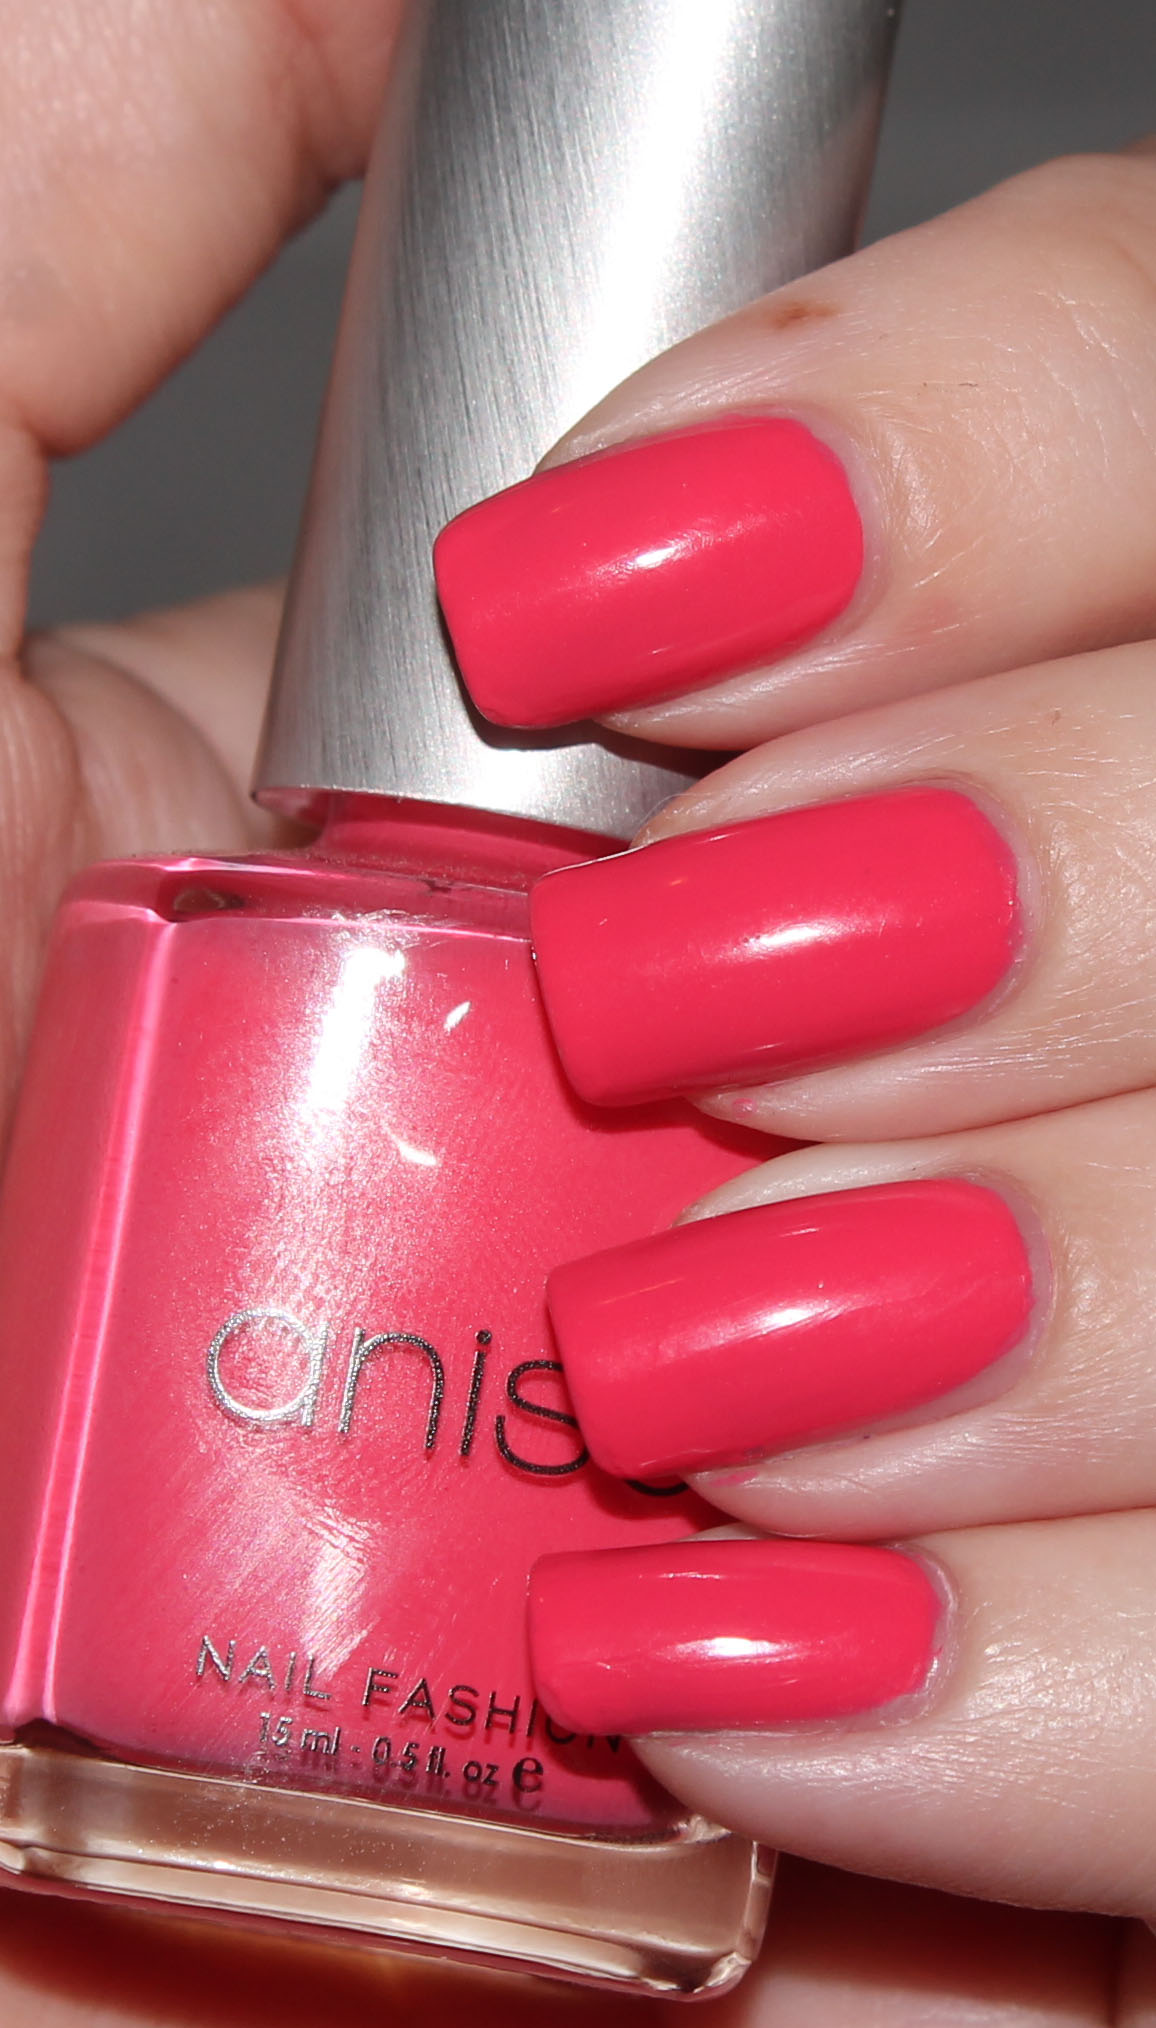 Anise Summer 2012 Alluring Collection Swatches And Reviews